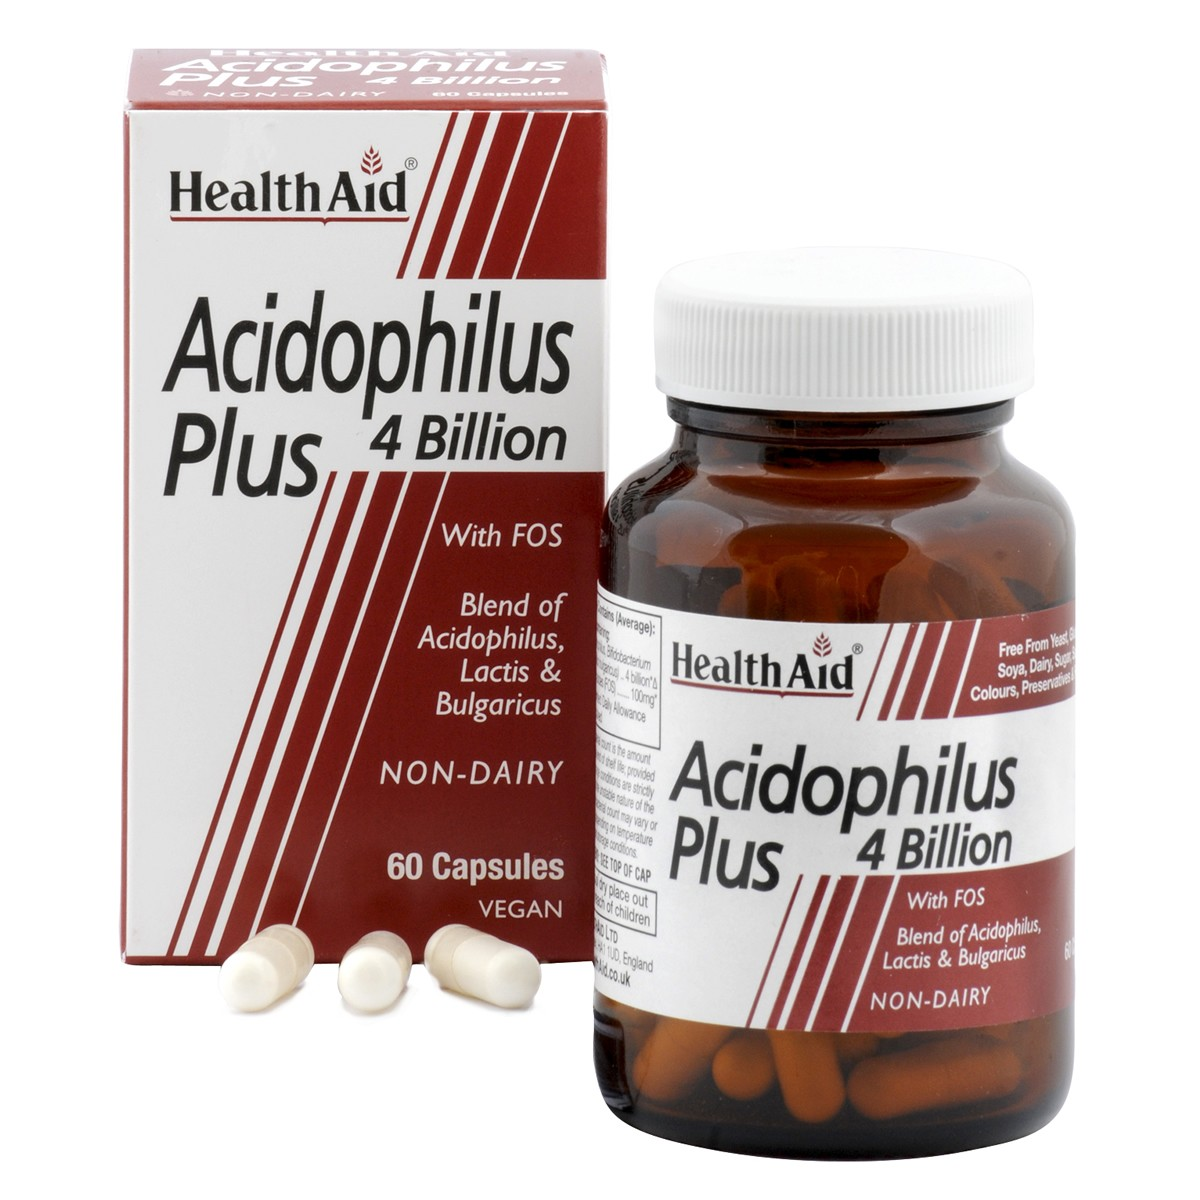 HealthAid Acidophilus Plus 4 Billion + FOS